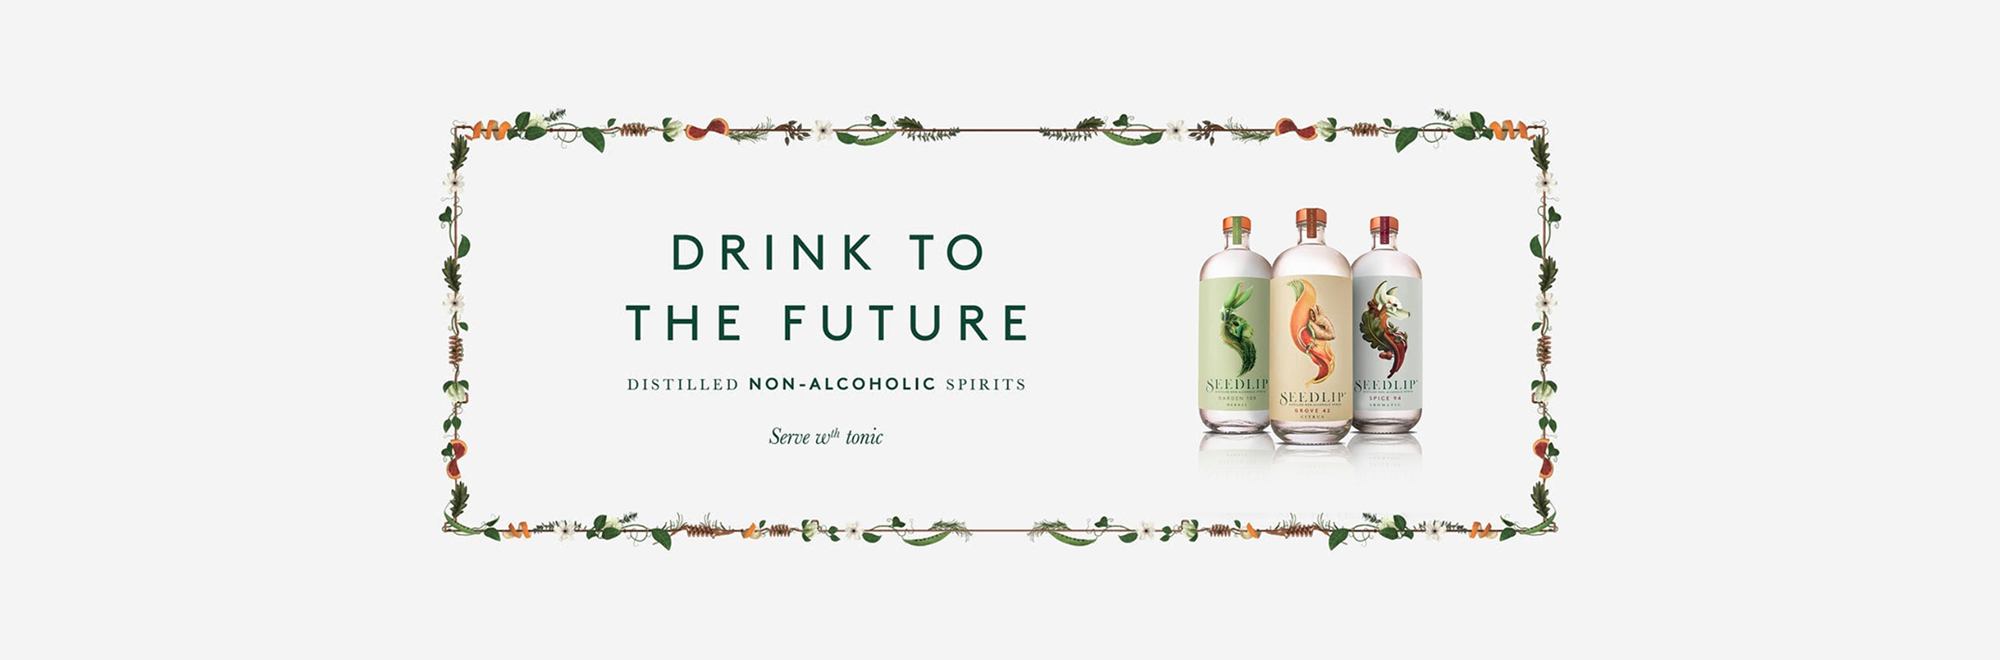 Seedlip launch first advertising campaign 'Drink to the Future' with And Rising